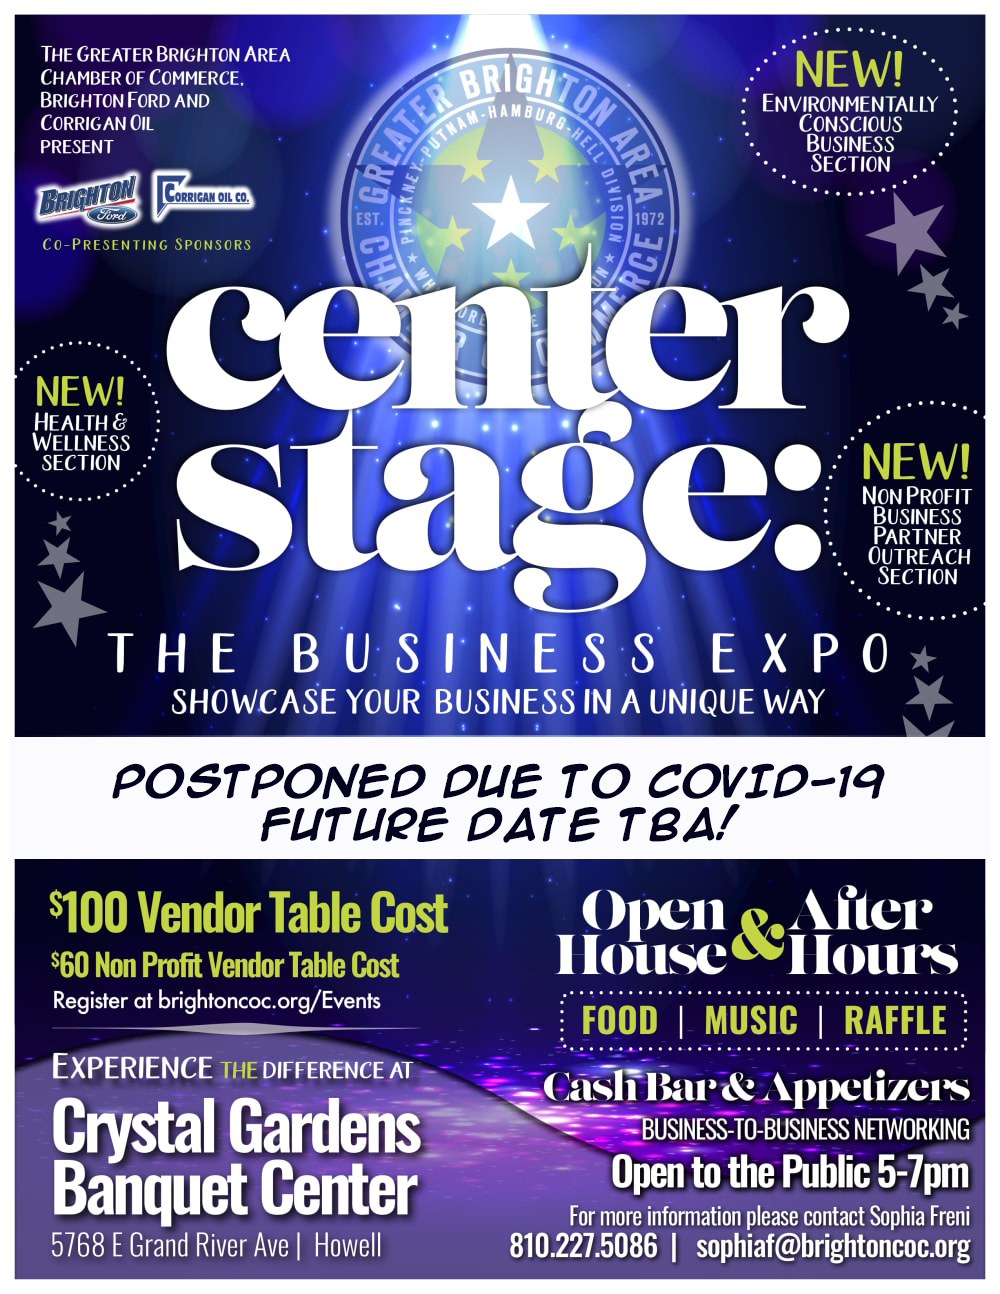 Center Stage Business Expo 2020 Date TBA